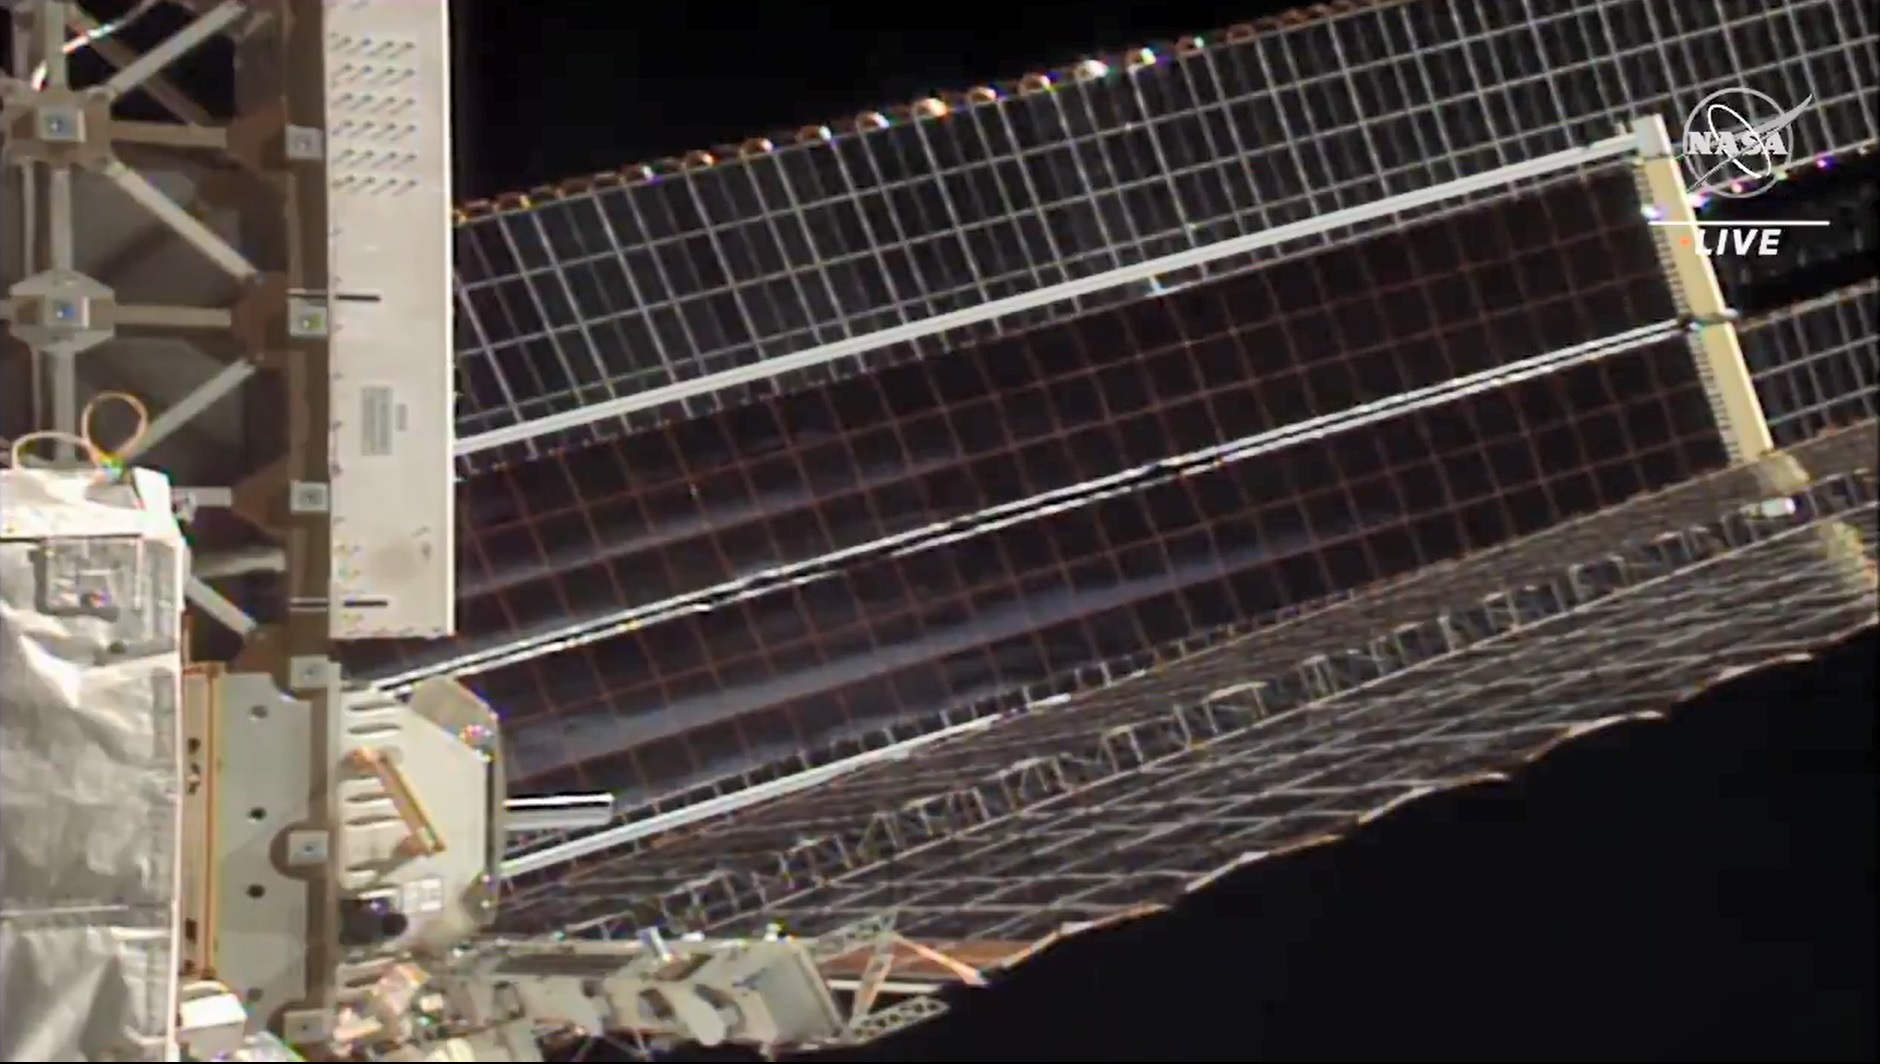 The 60-foot-long roll out solar arrays were successfully deployed in a process that took about 10 minutes.